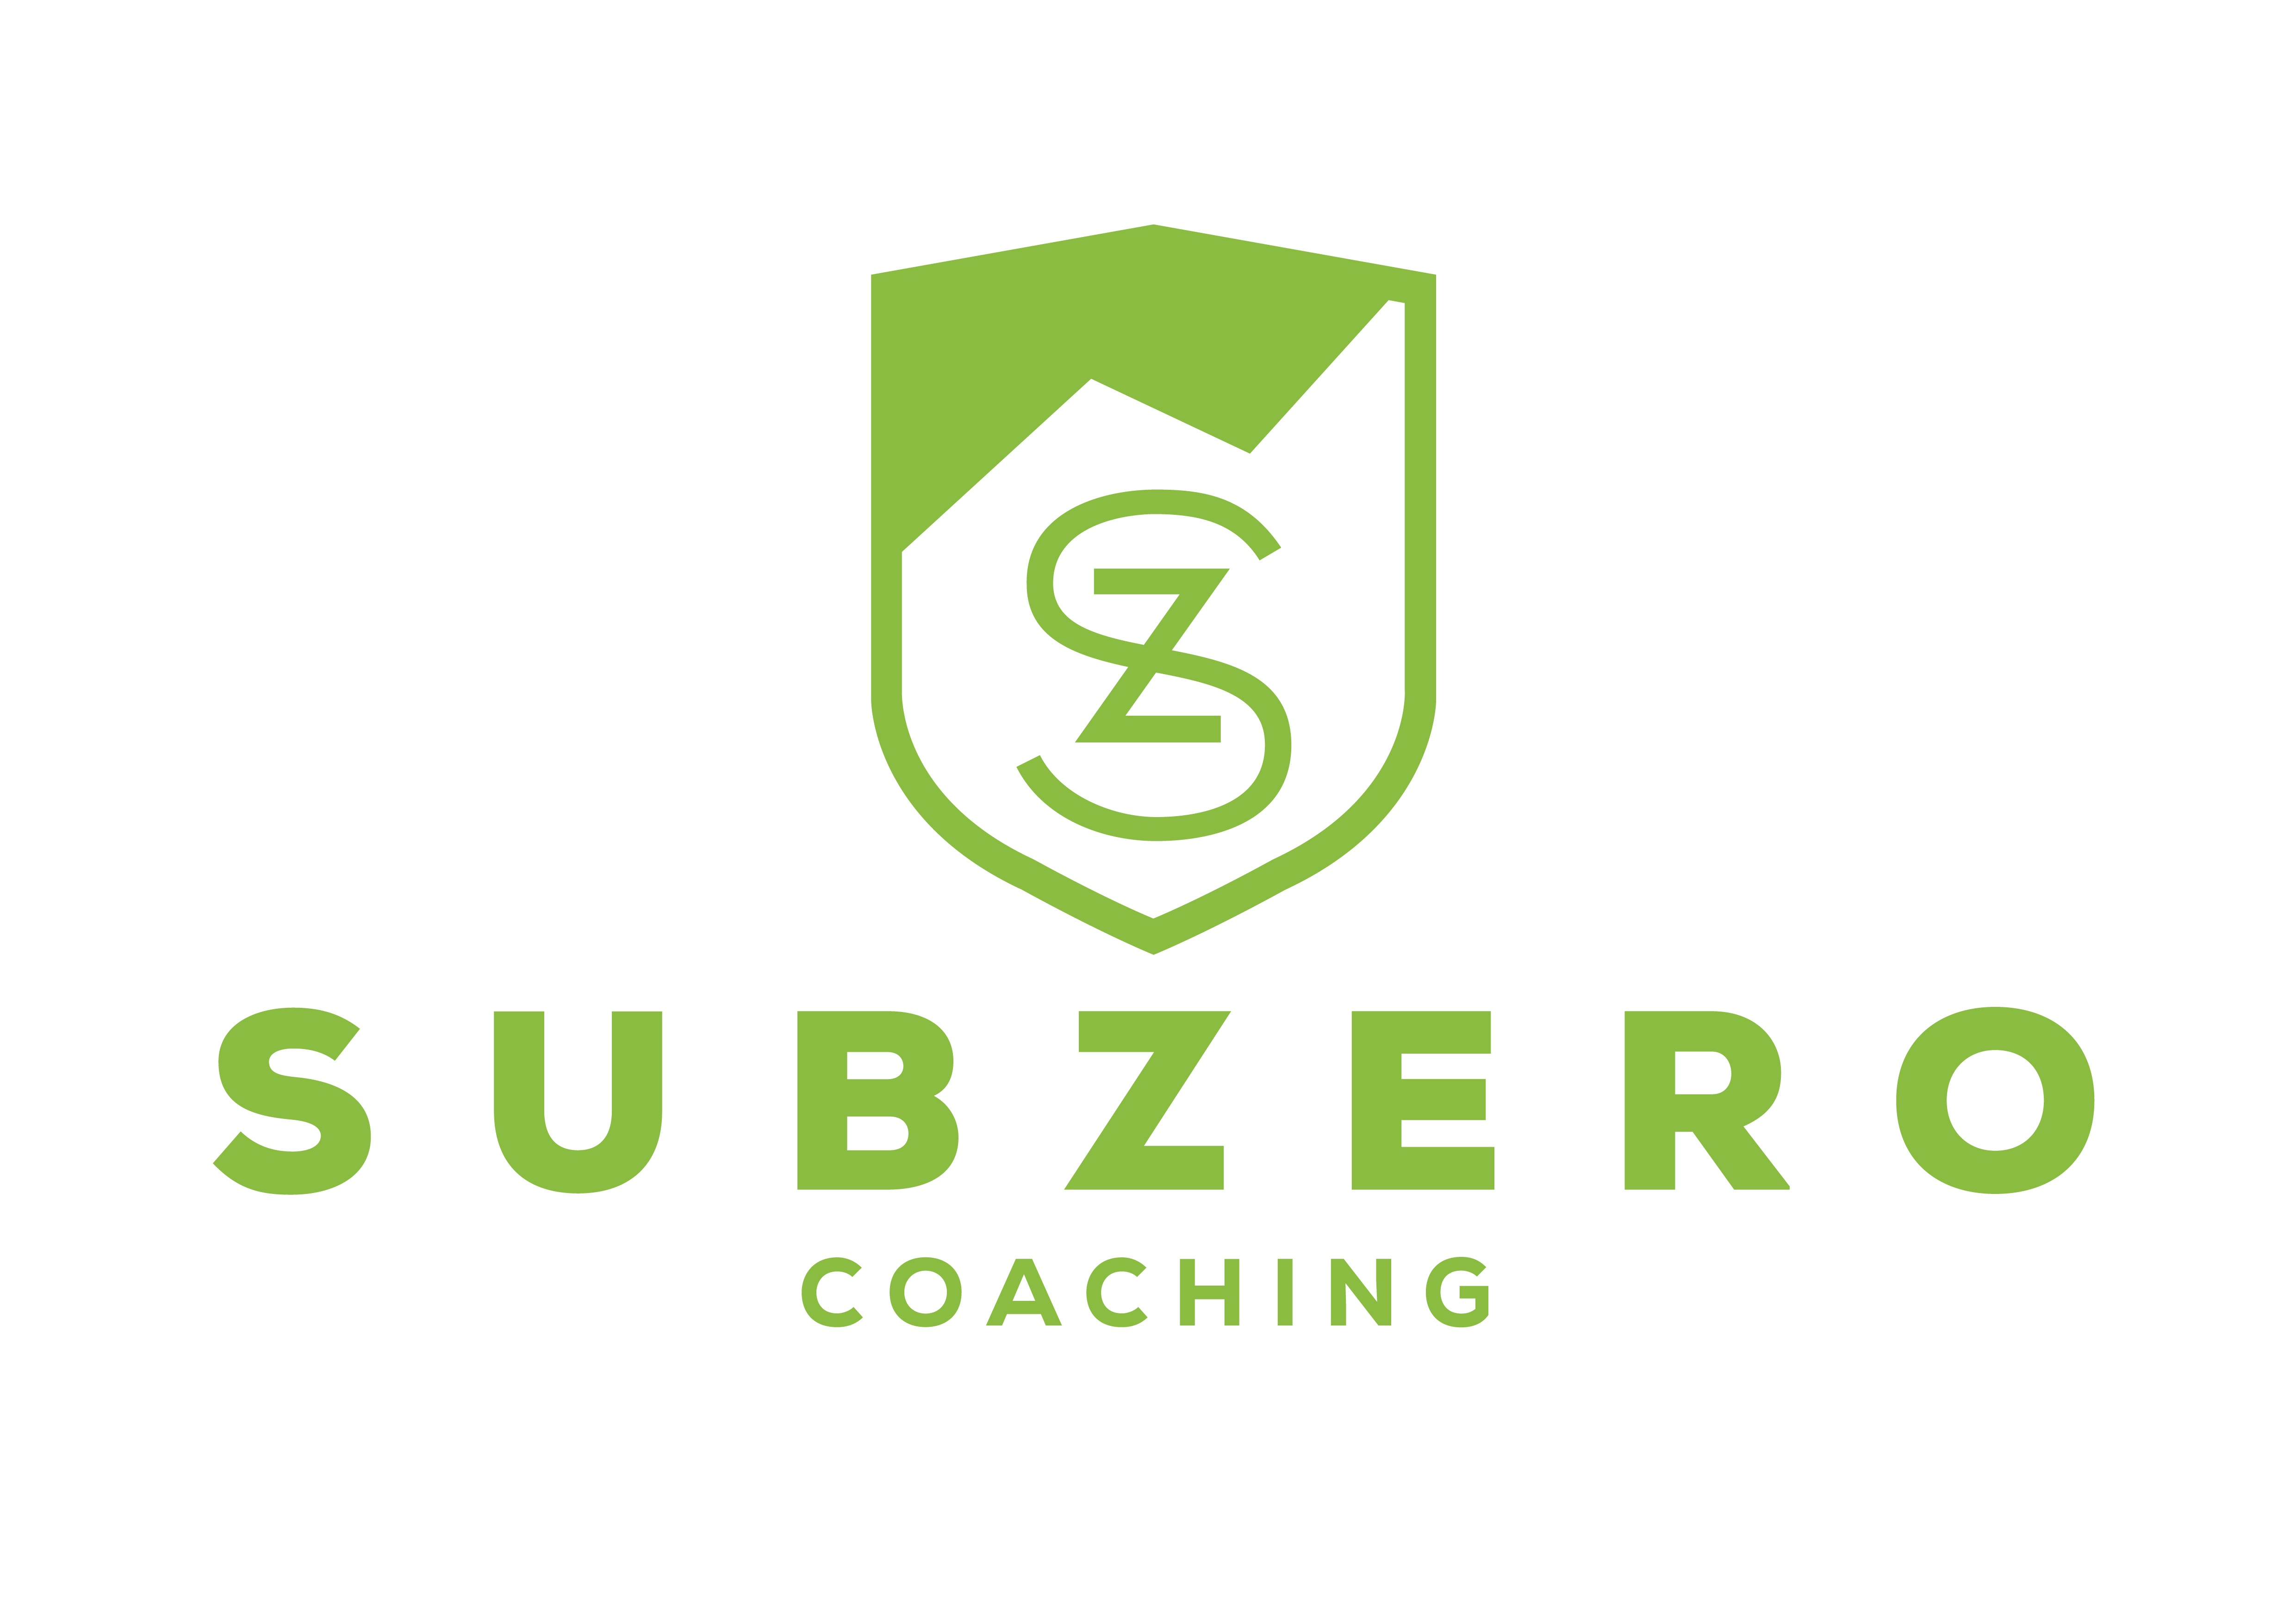 Subzero Coaching